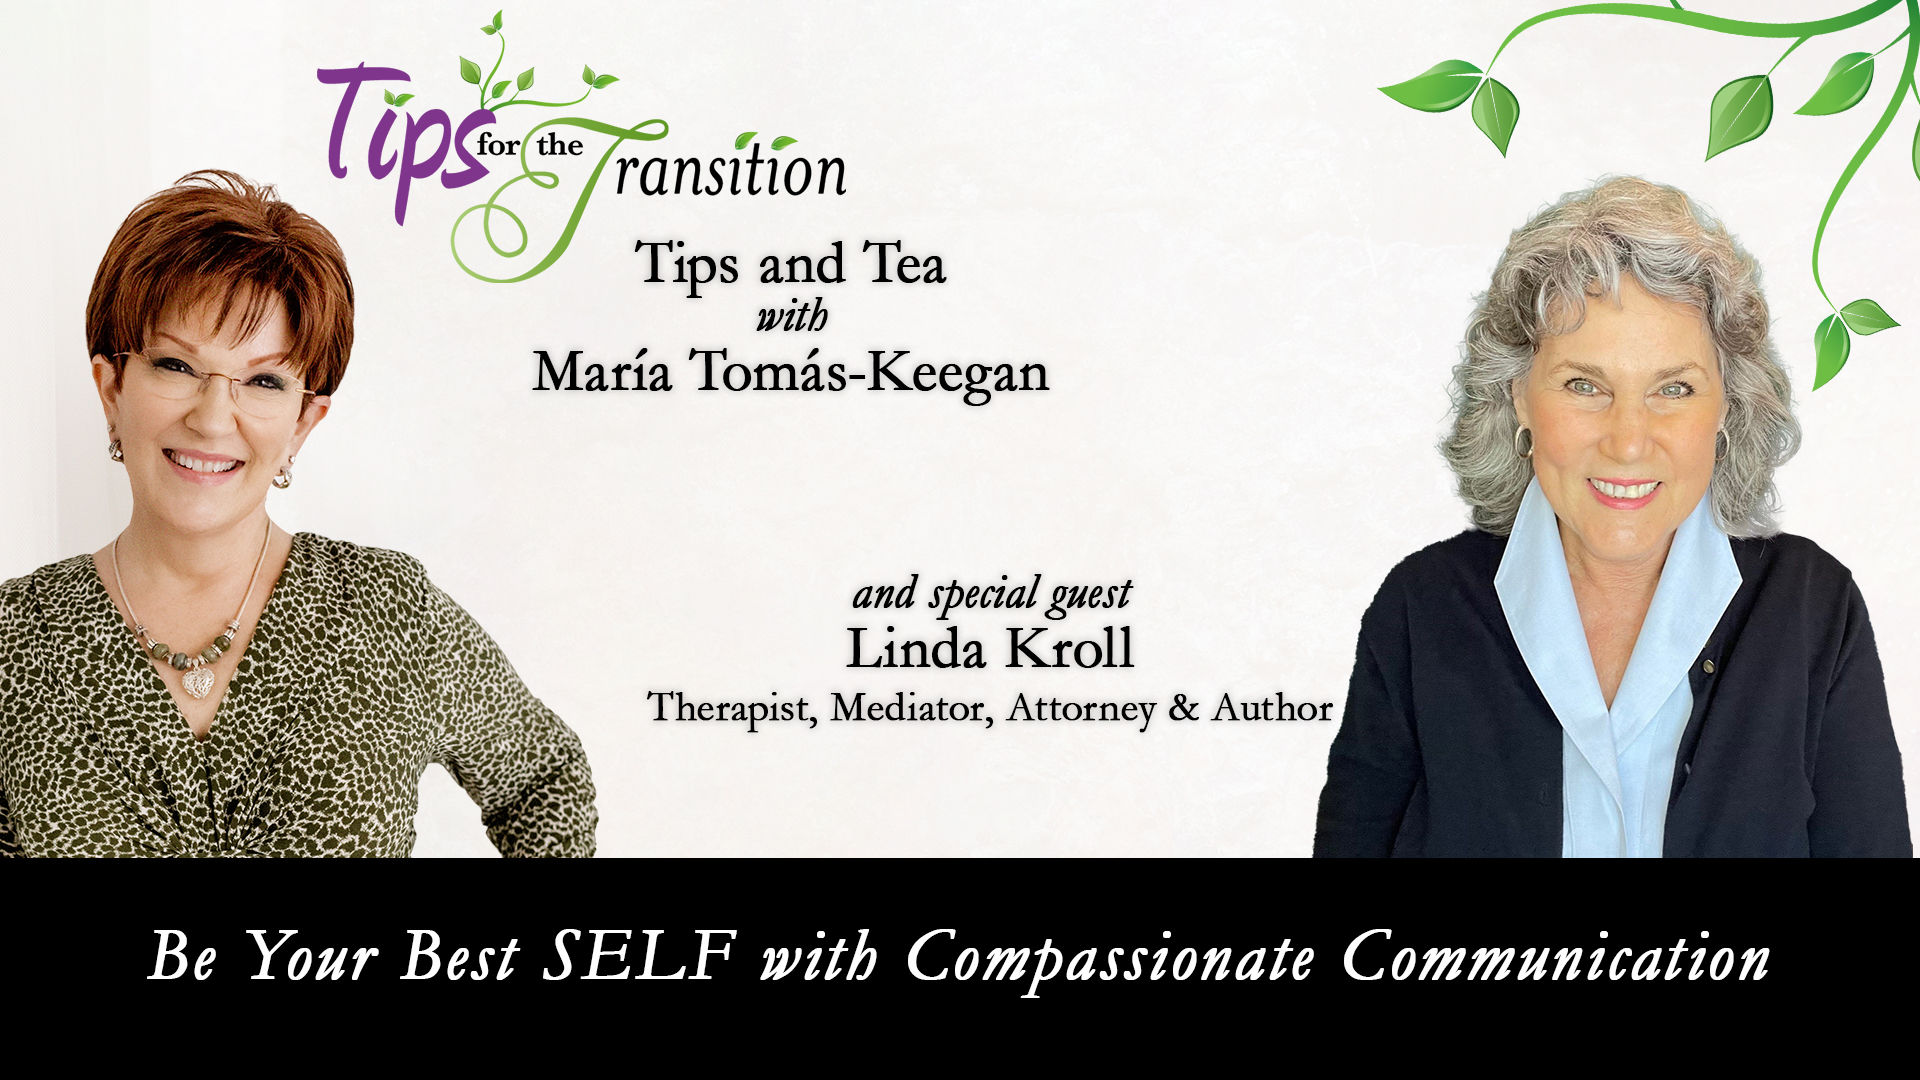 Be Your Best SELF with Compassionate Communication